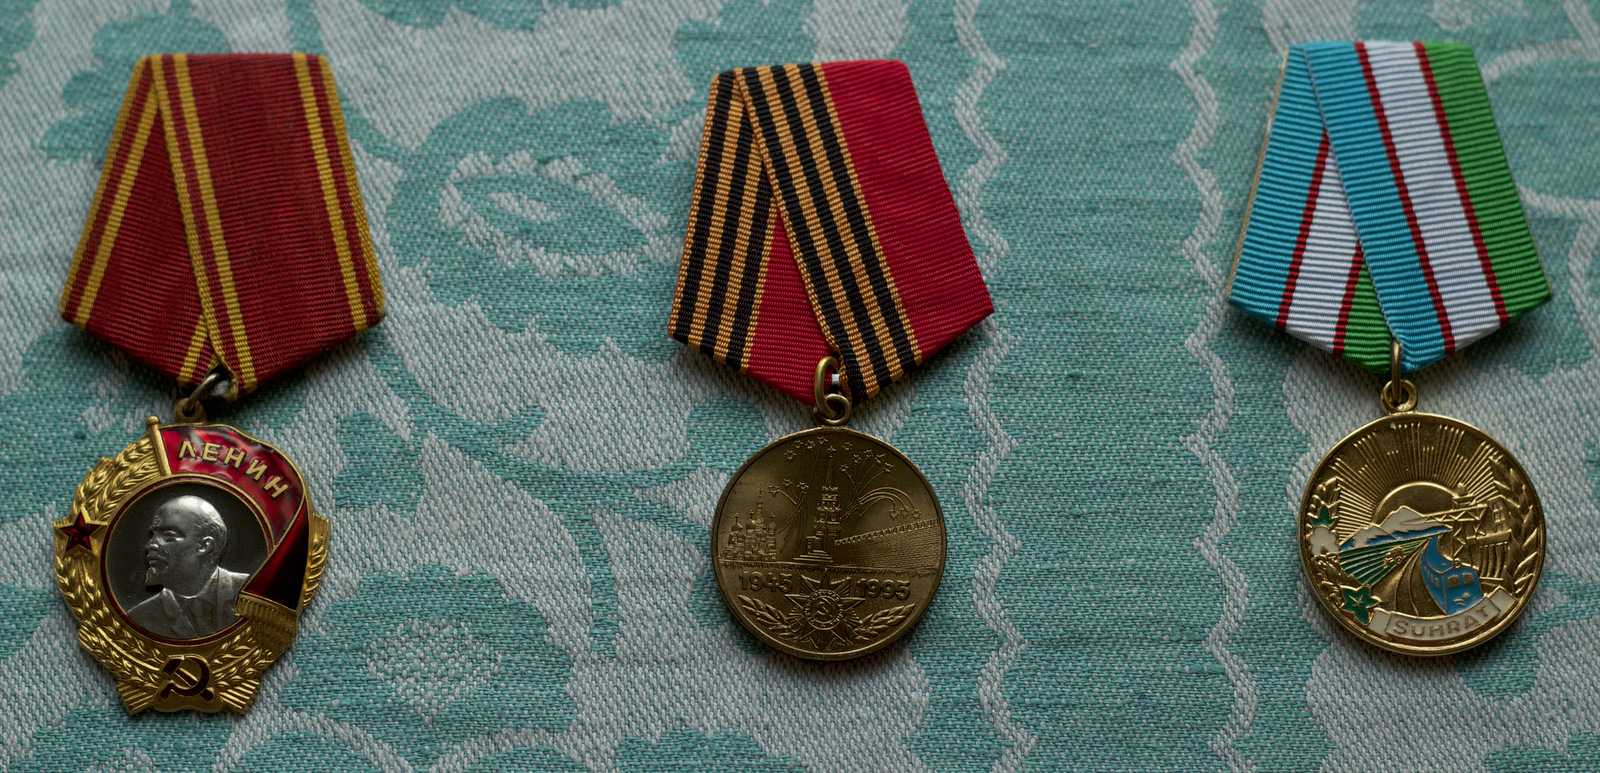 Nikolay's parents' medals and state awards